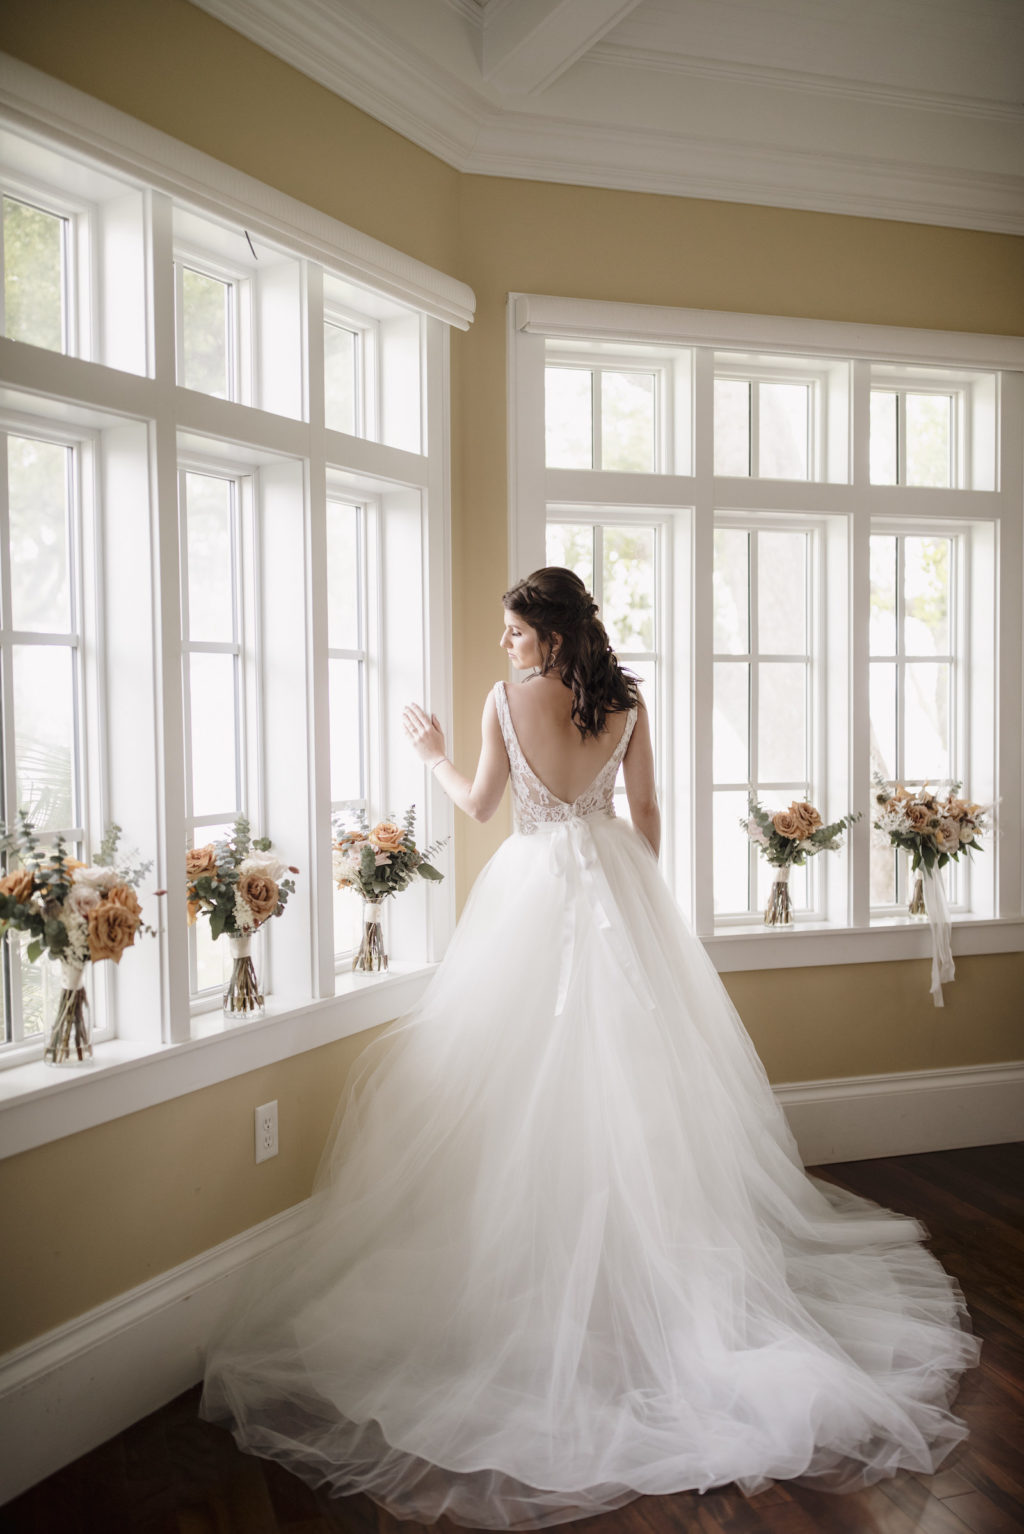 Low Back Lace Detail Ballgown Wedding Dress   Florida Bride in her Dress Before the Wedding Portrait   Paloma Blanca, Overskirt: Hayley Paige   Sarasota Wedding Photographer Alisa Sue Photography